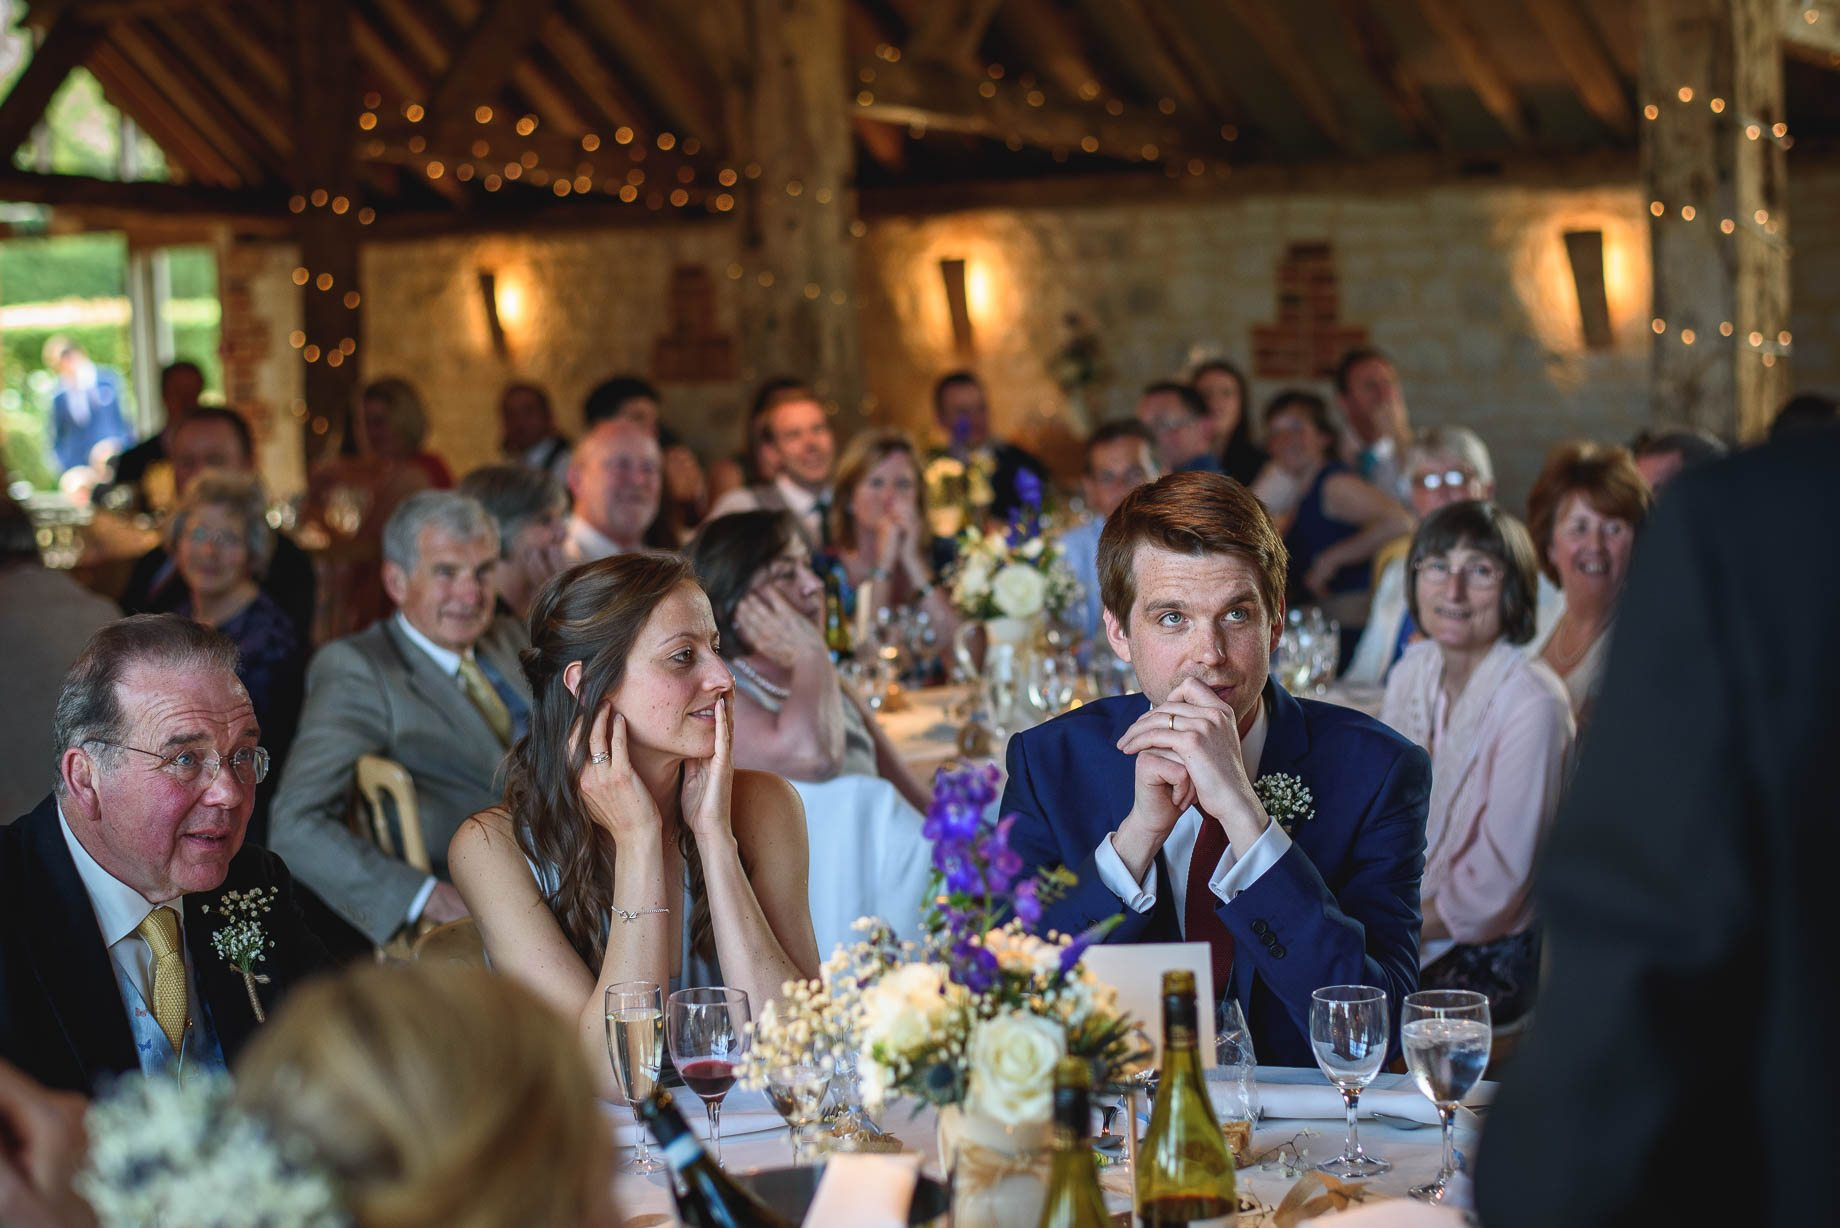 Bury Court Barn wedding photography by Guy Collier - Heather and Pat (119 of 170)